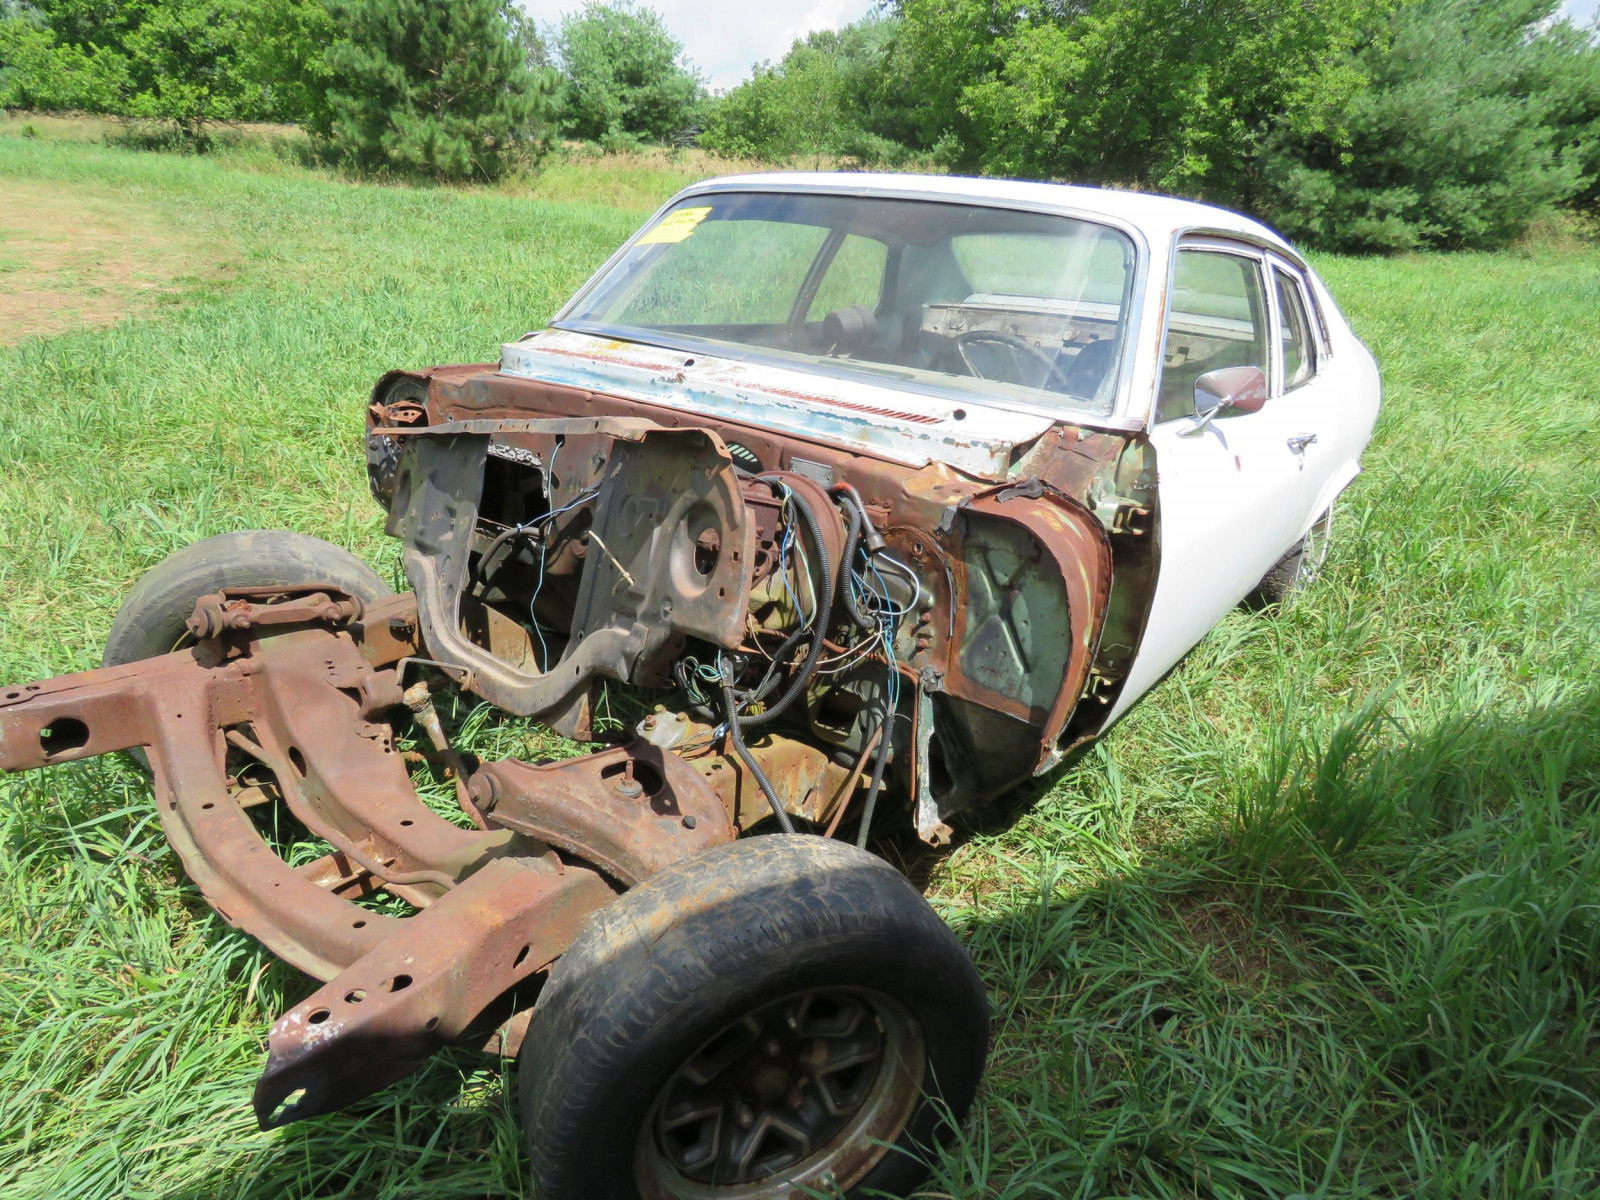 1973 Chevrolet Nova Body for Restore or Parts - Image 1